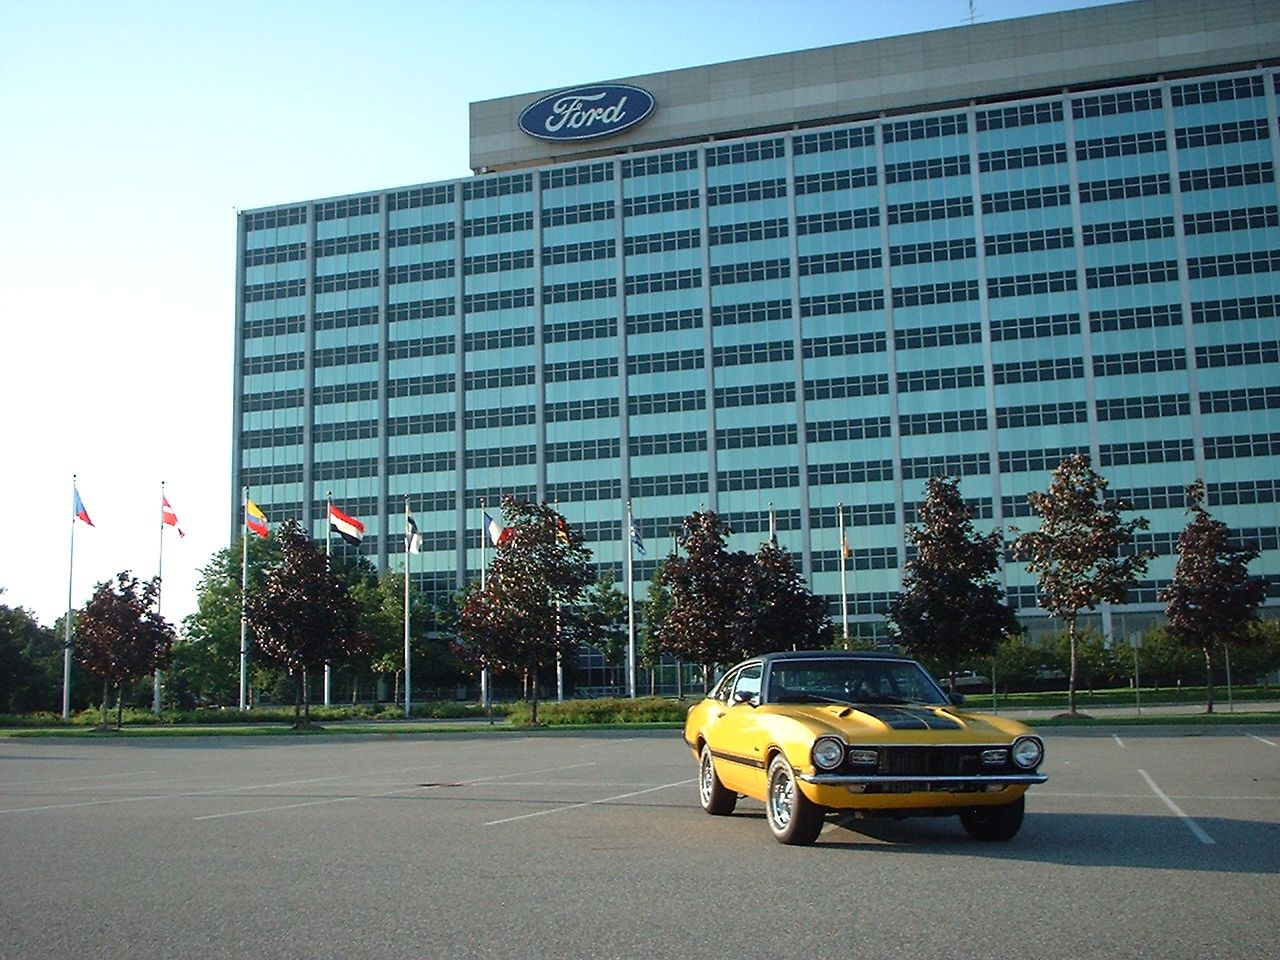 Ford Maverick Ford World Headquarters In Dearborn Michigan